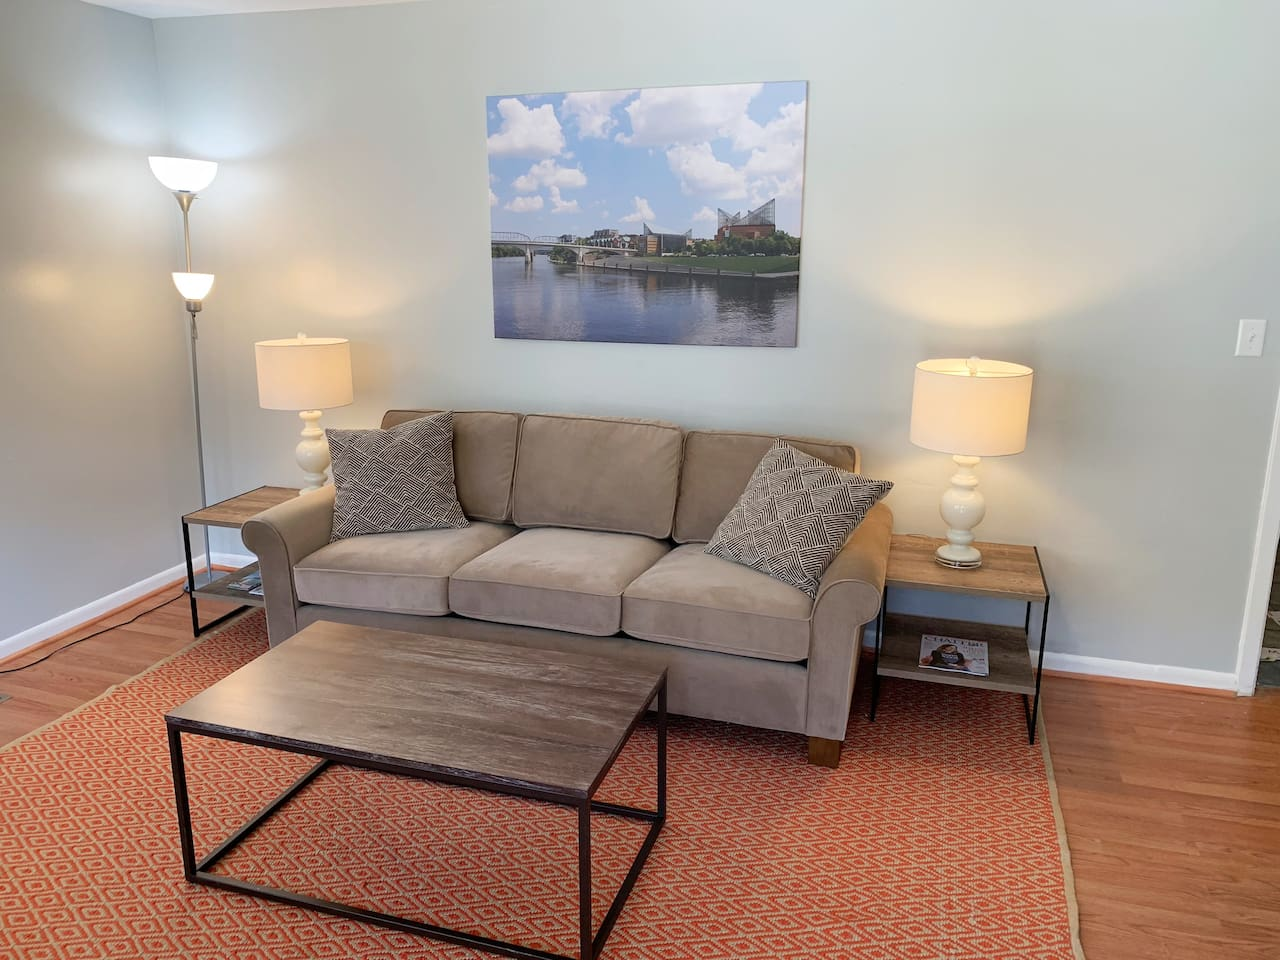 Rest and relax on our comfy living room couch.